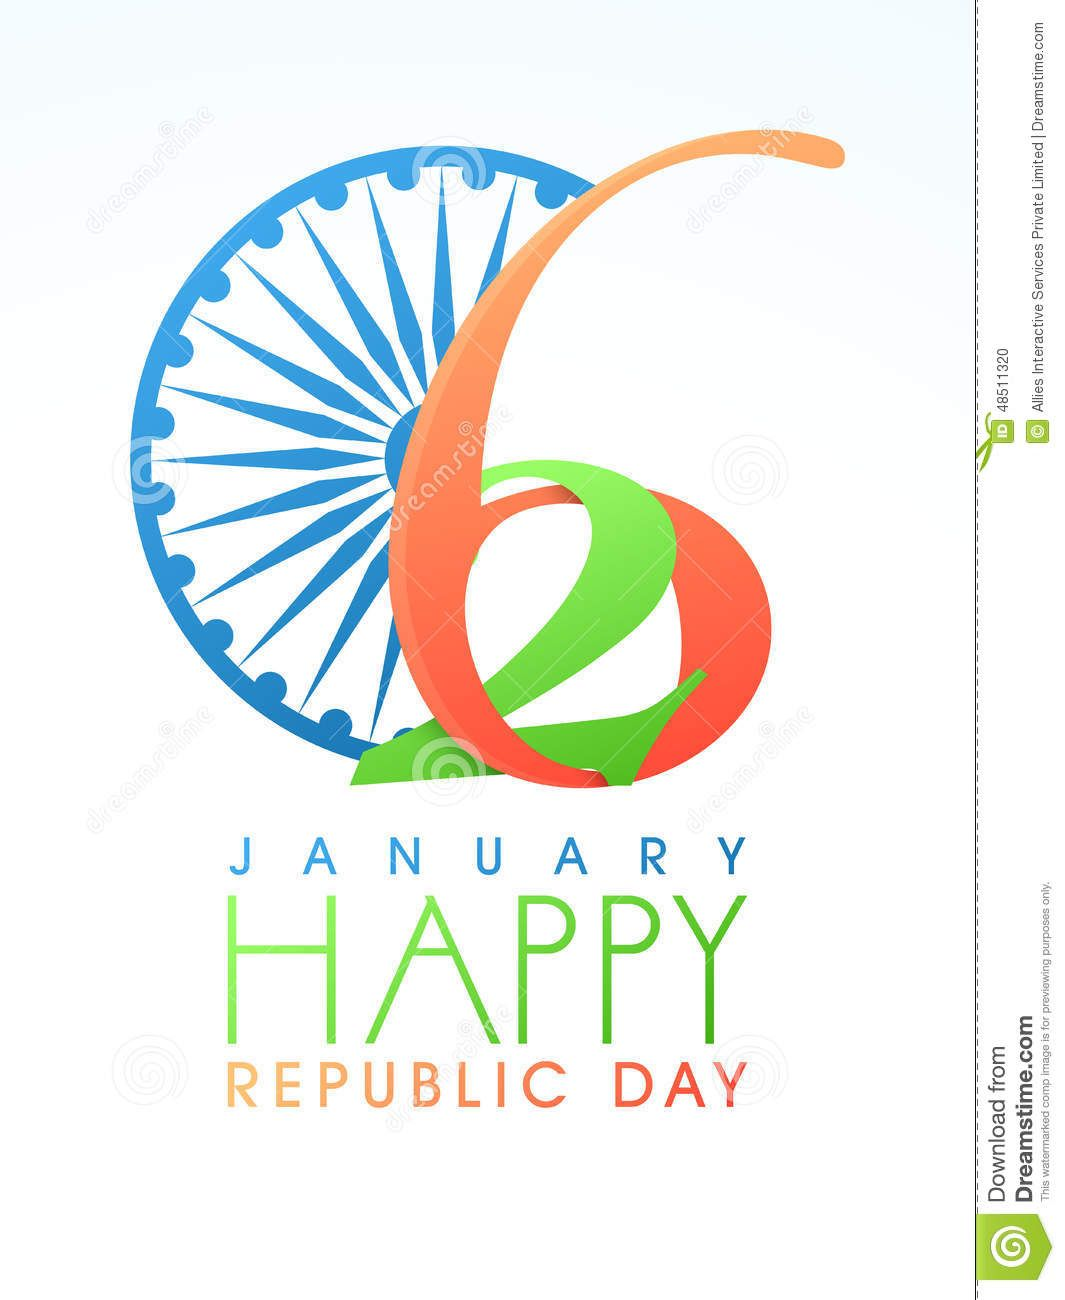 26 january republic day greeting cards ecards and cliparts 26 january republic day greeting cards ecards and cliparts m4hsunfo